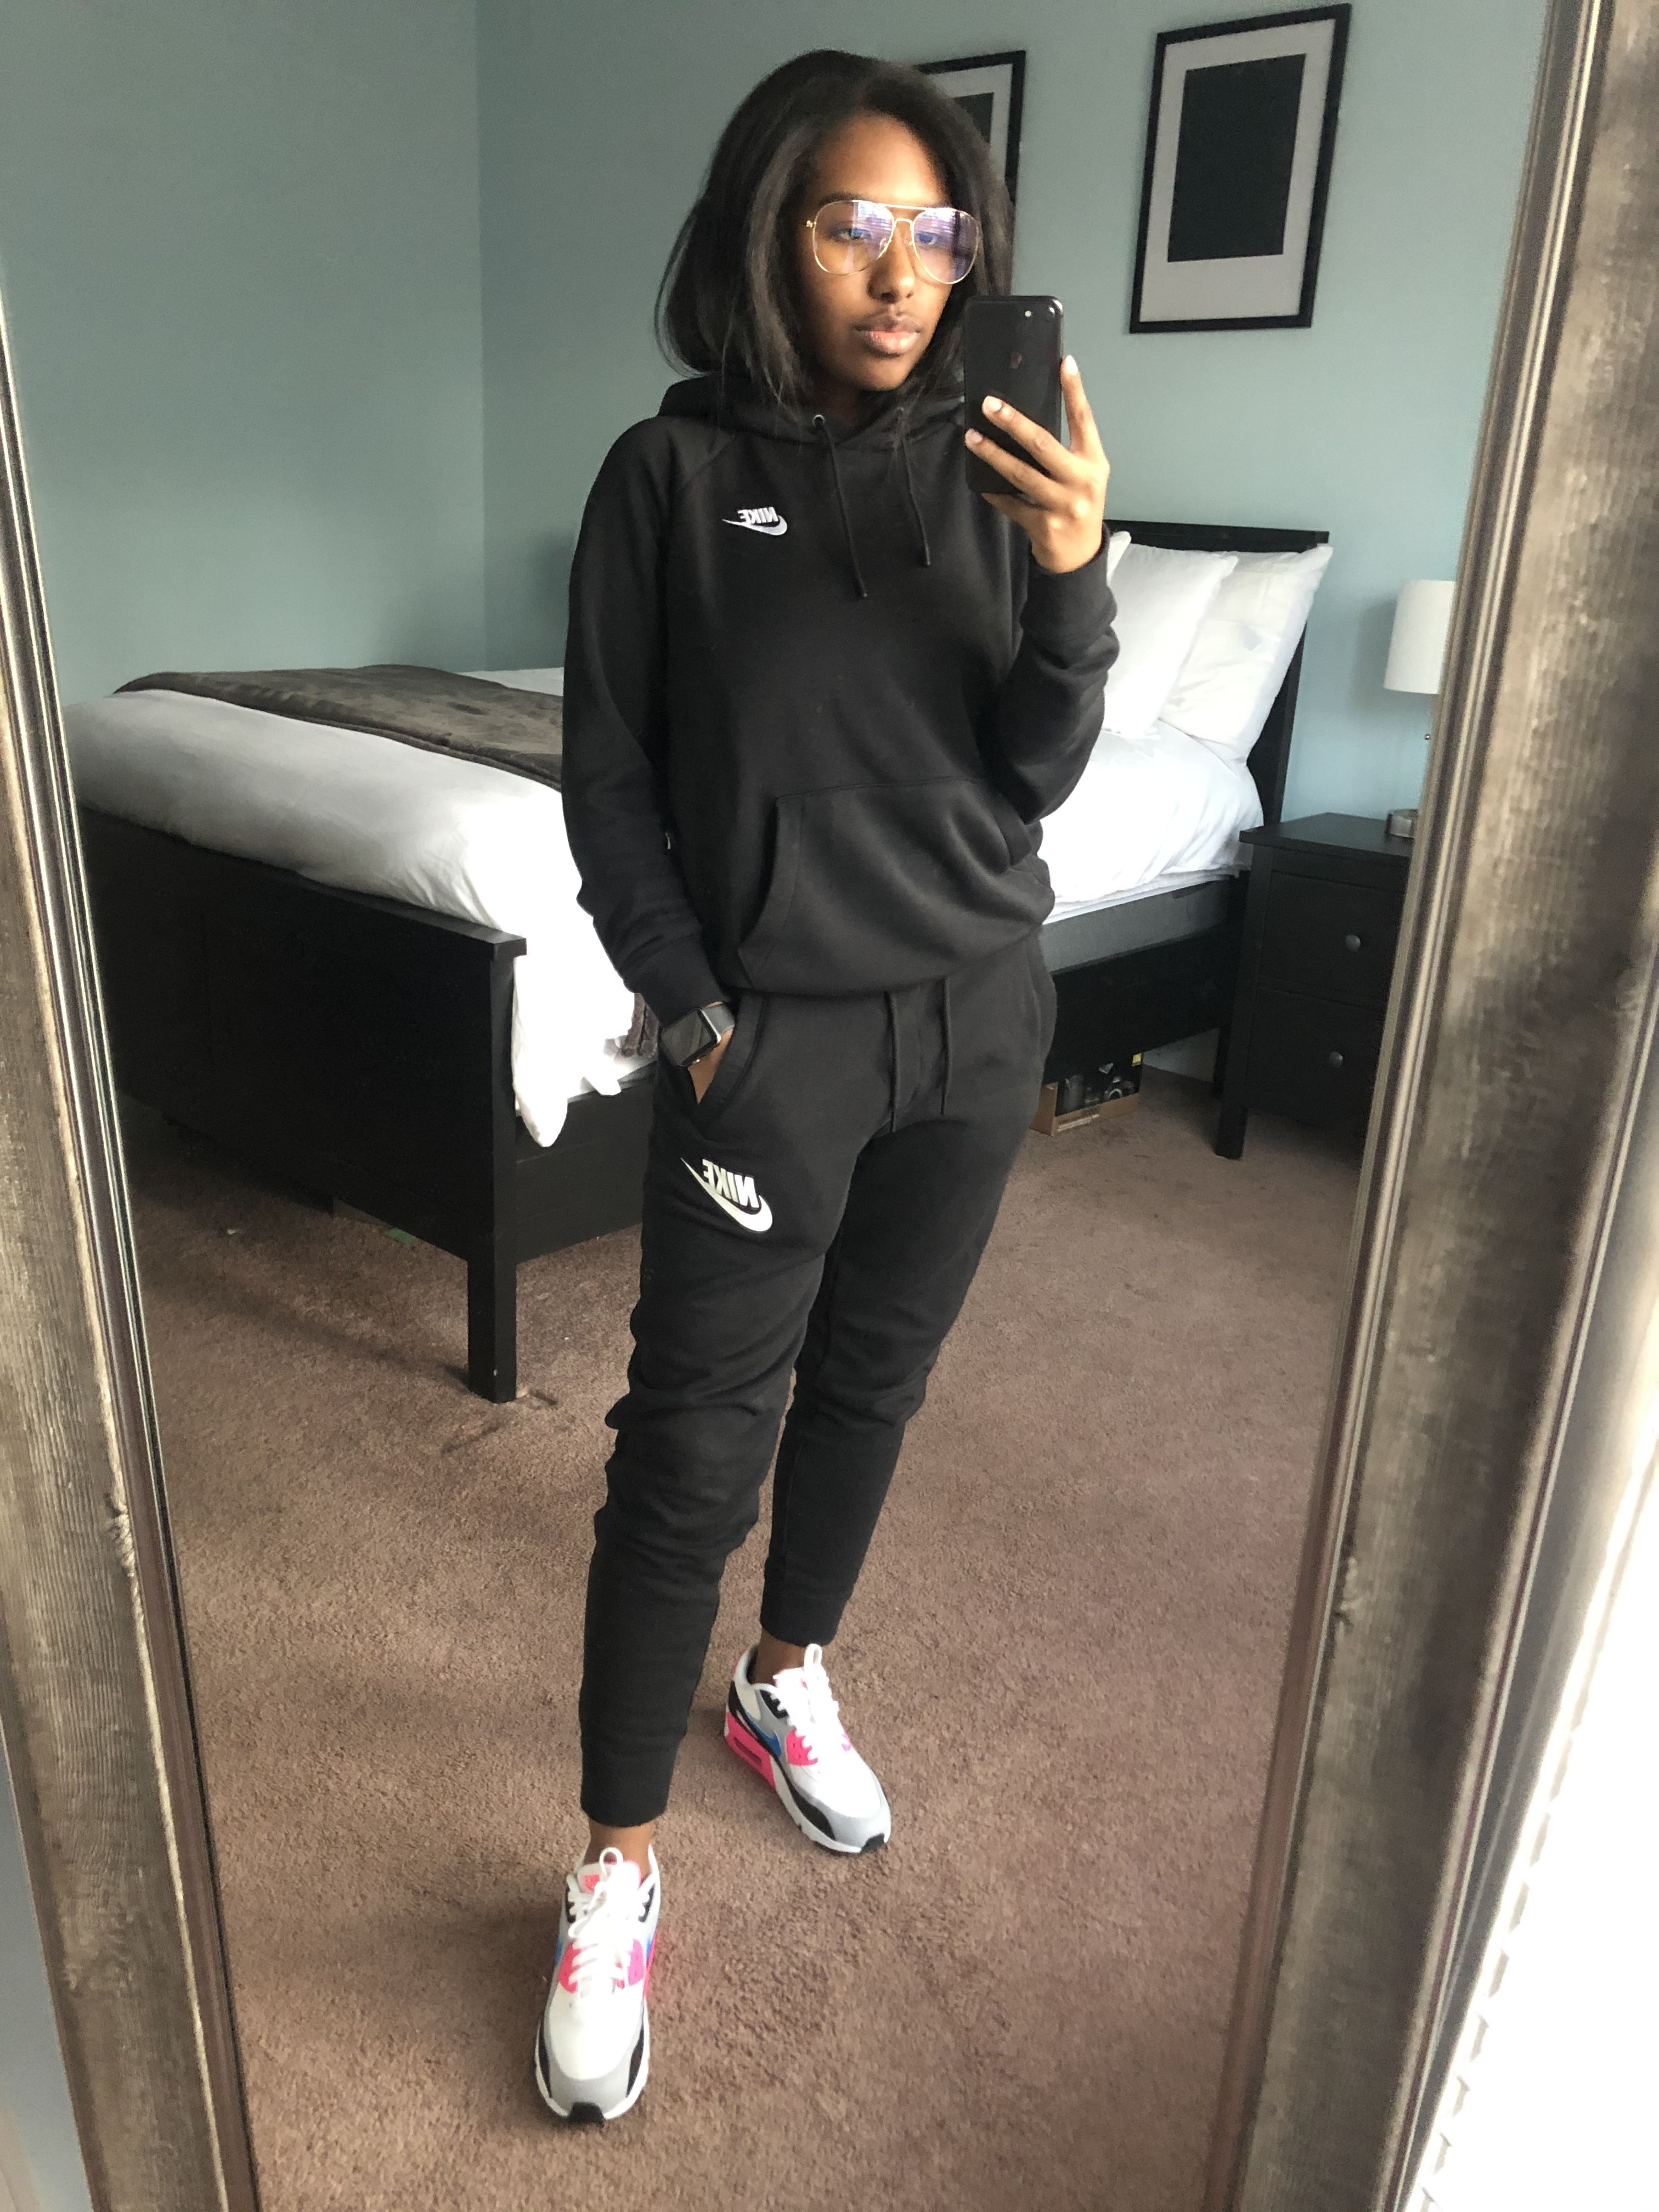 Nike Outfit In 2020 Air Max Outfit Nike Outfits Nike Women Outfits